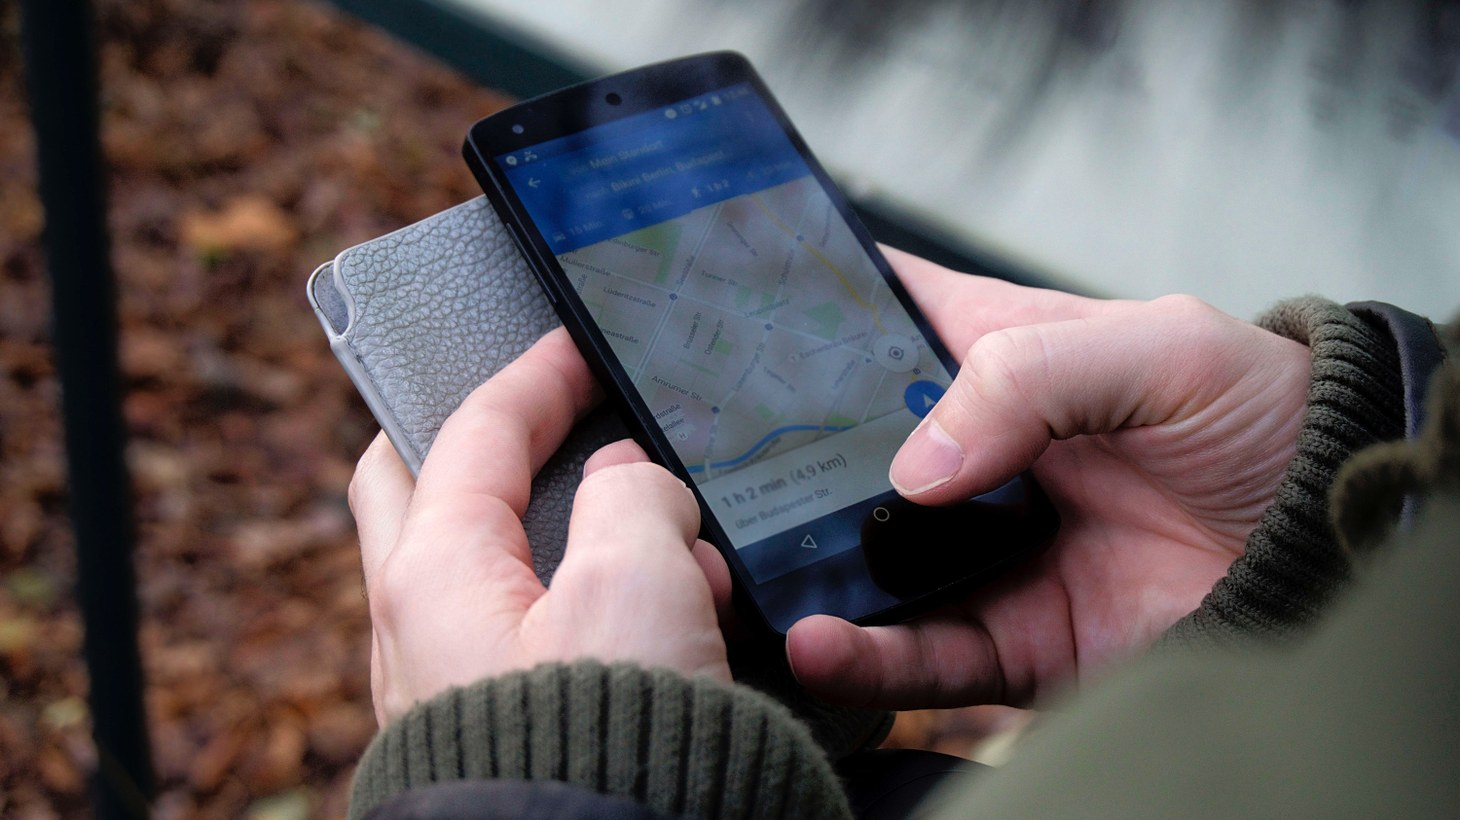 A person using Google Maps on their smartphone.